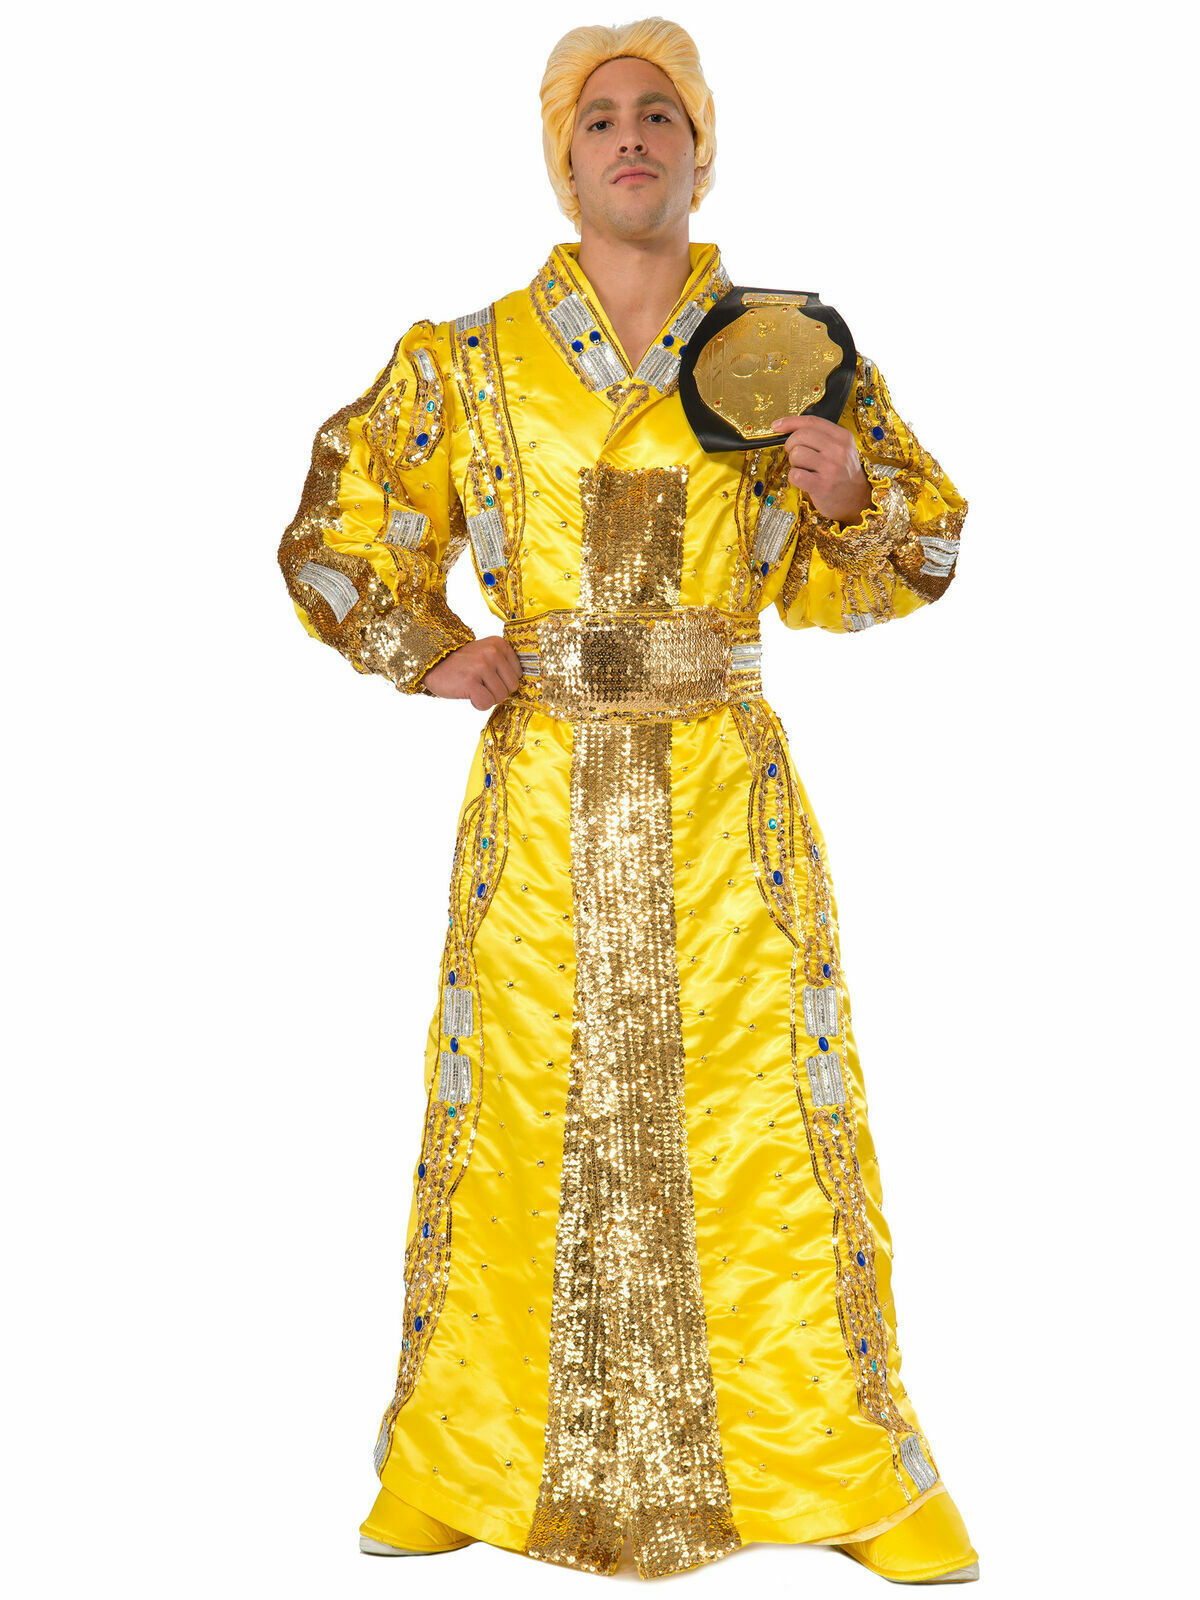 Ric Flair Deluxe Costume Adult WWE Wrestling Halloween Free Shipping Cosplay